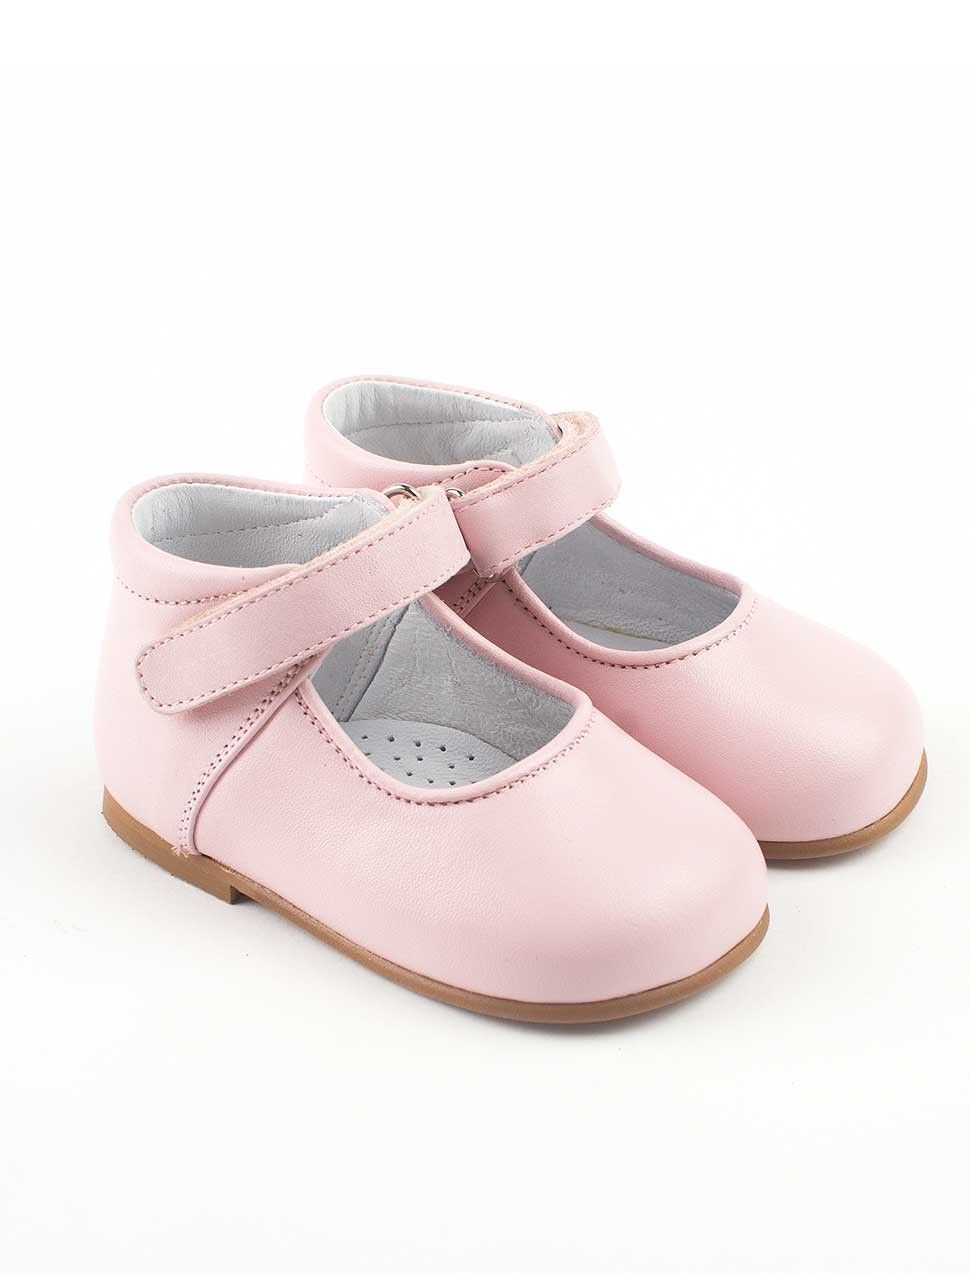 5ecbdcf9d6a1 Leather handmade first walking shoes for baby girls in soft pink ...